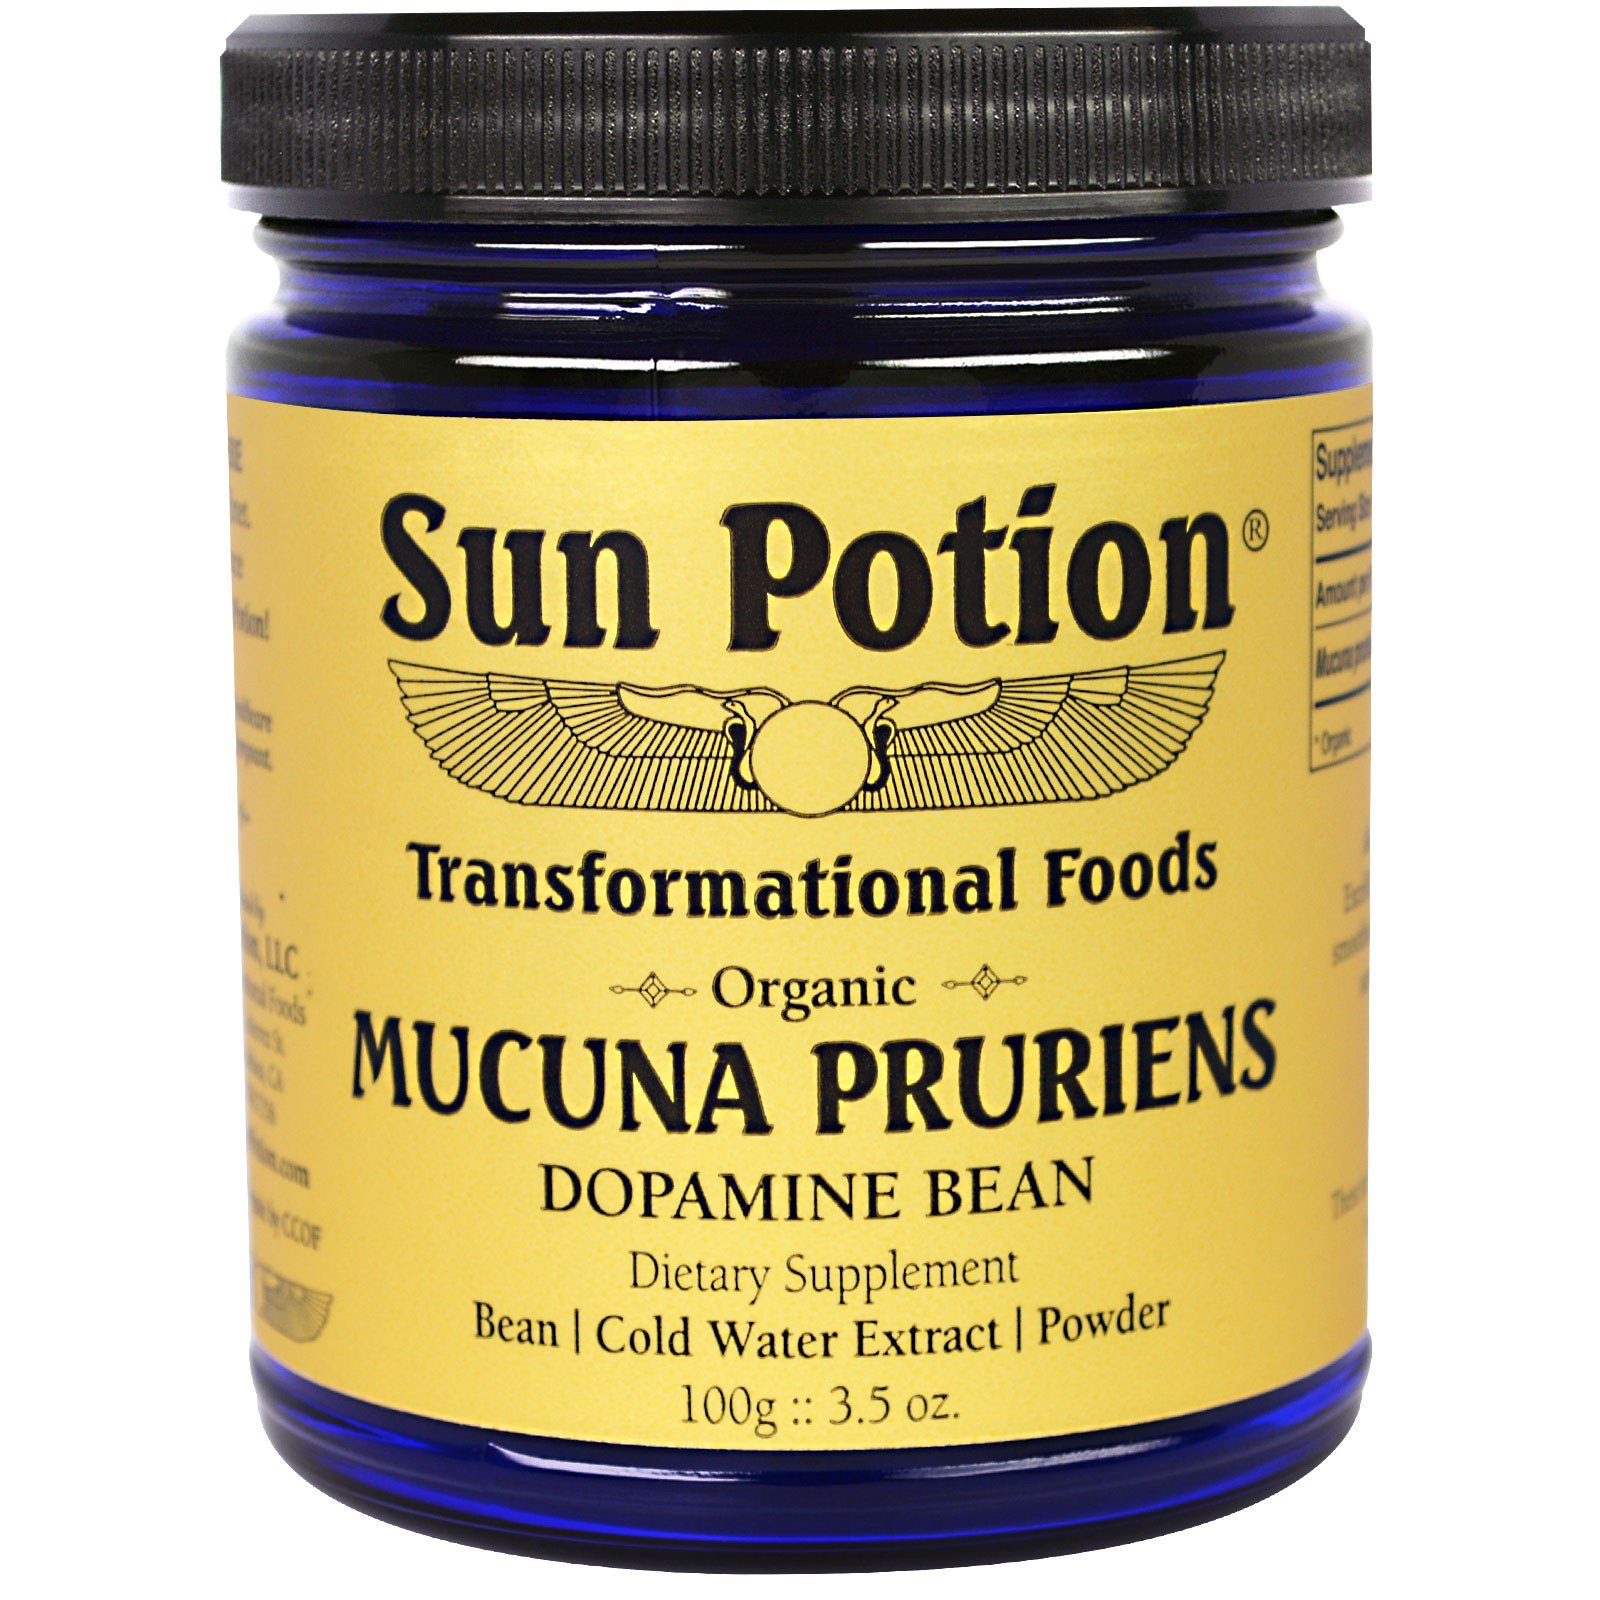 Mucuna Pruriens - Enhance Brain FunctionElevate Mood & Refine the SensesSoothe the Nervous SystemSupport Overall Well-being